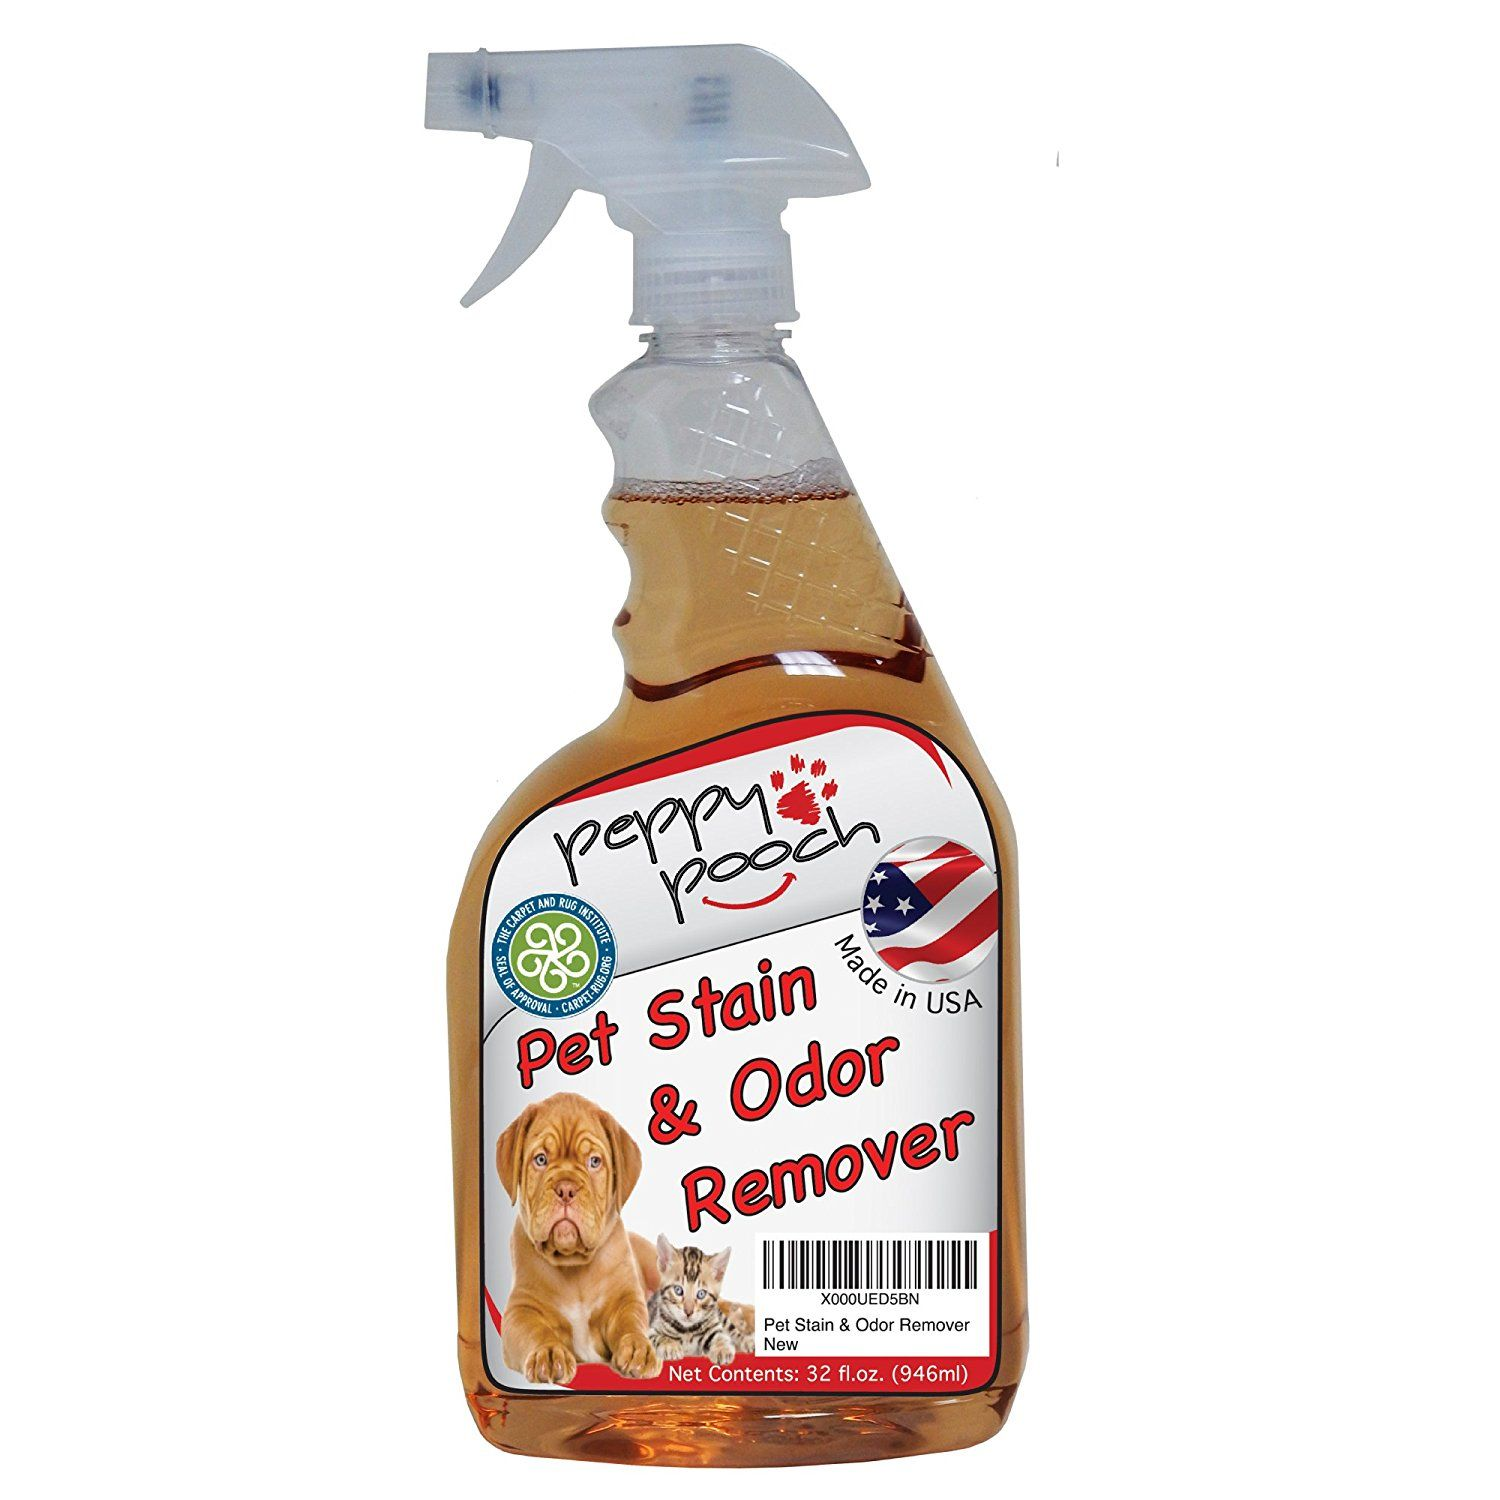 Dog Smell Clean Up: Professional Strength. Safe